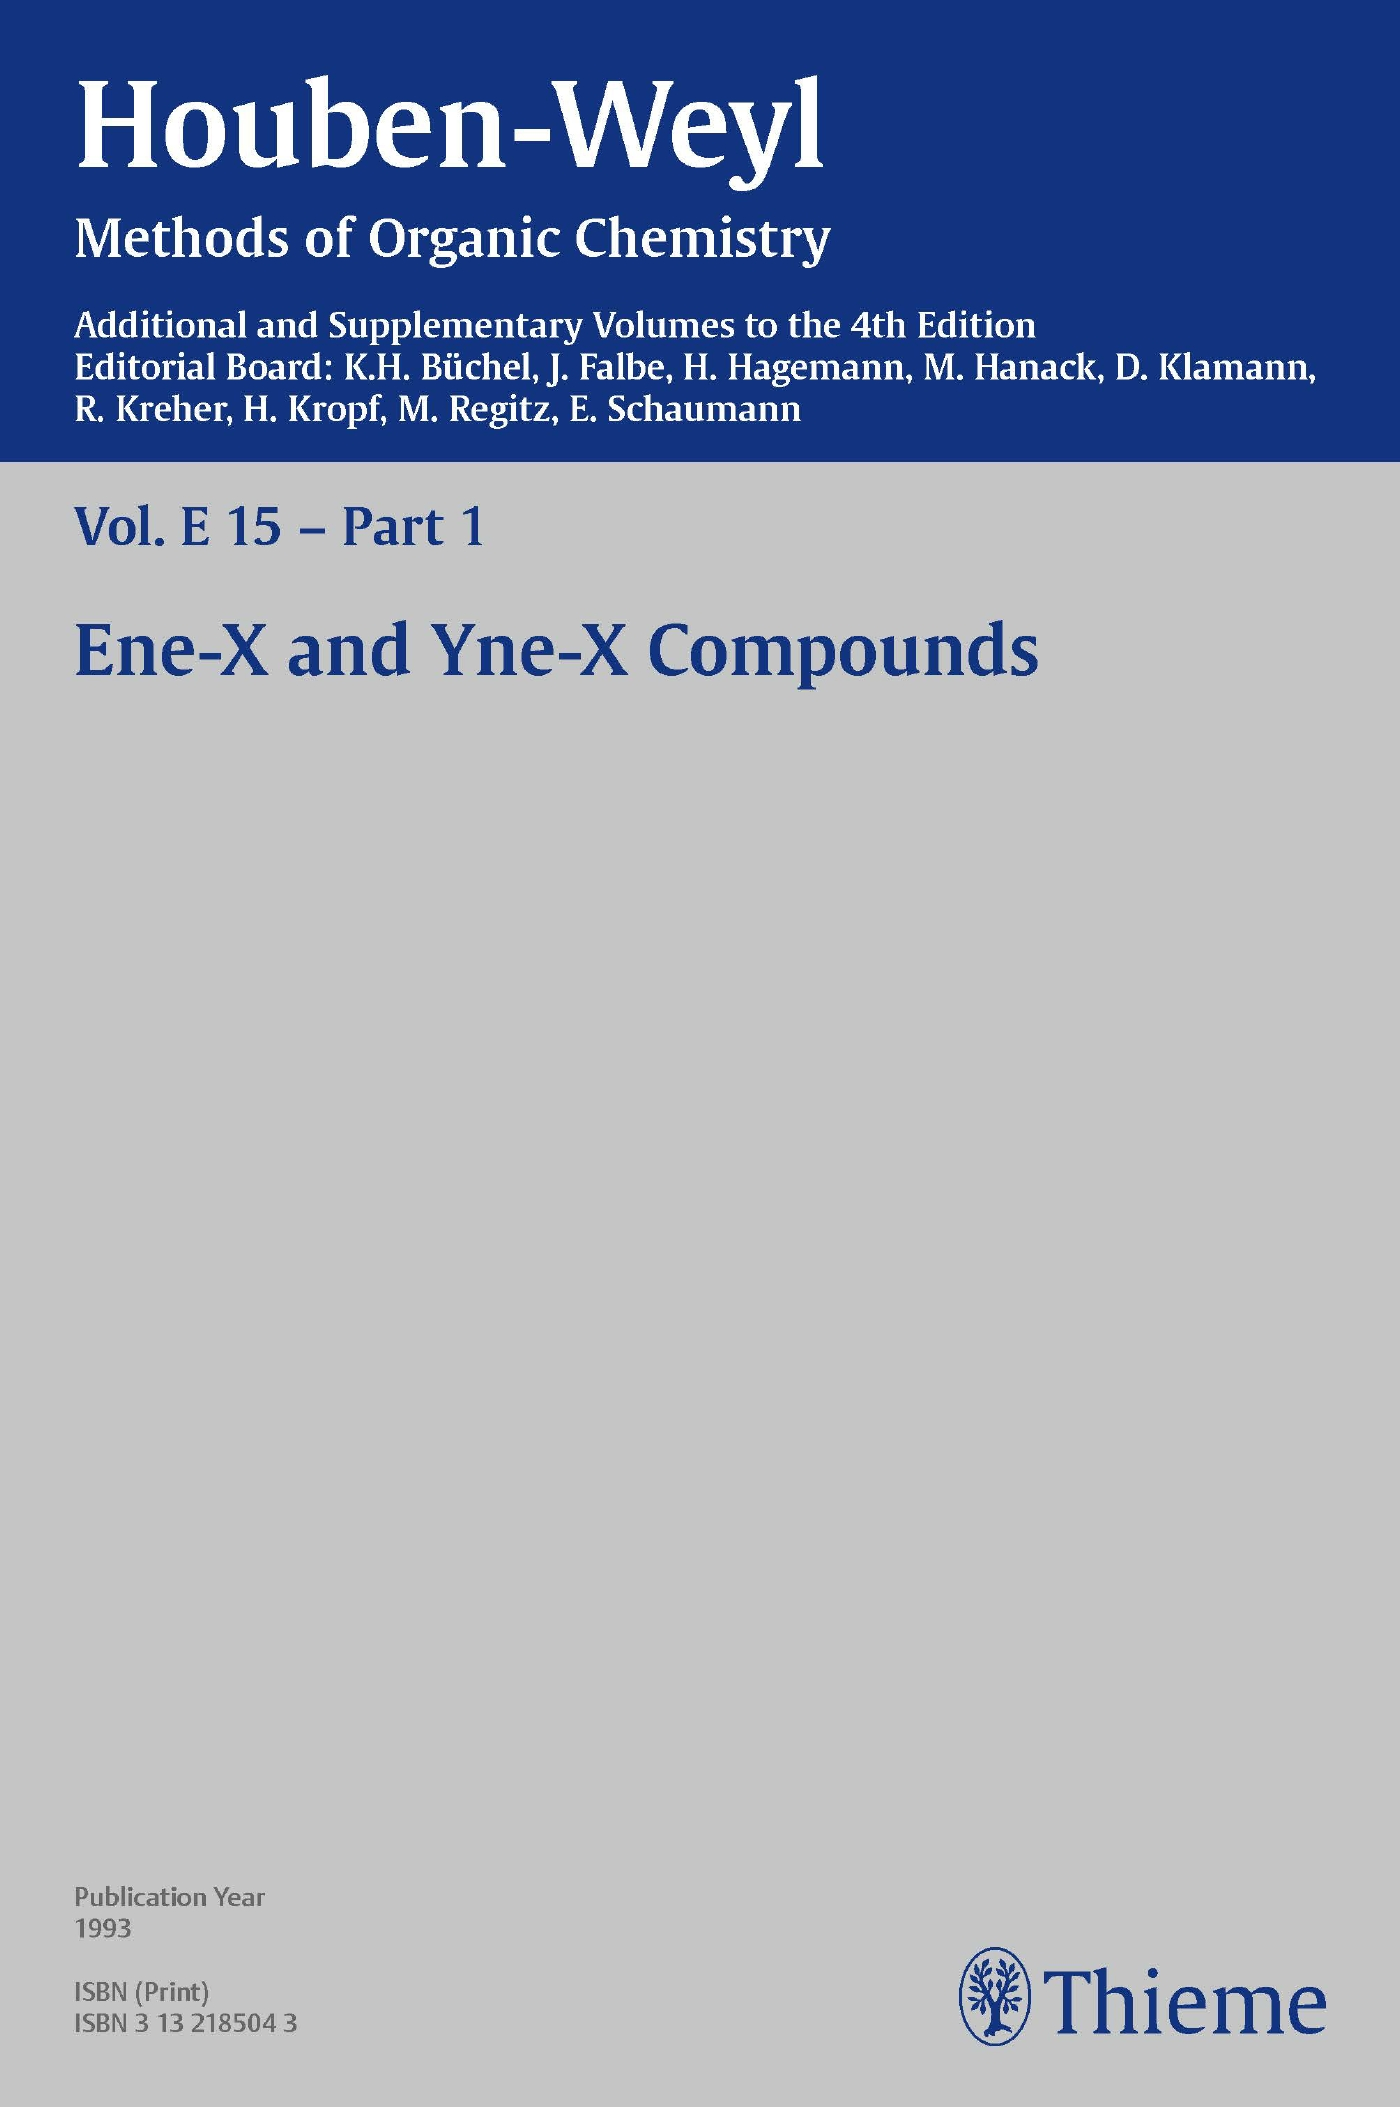 Houben-Weyl Methods of Organic Chemistry Vol. E 15/1, 4th Edition Supplement